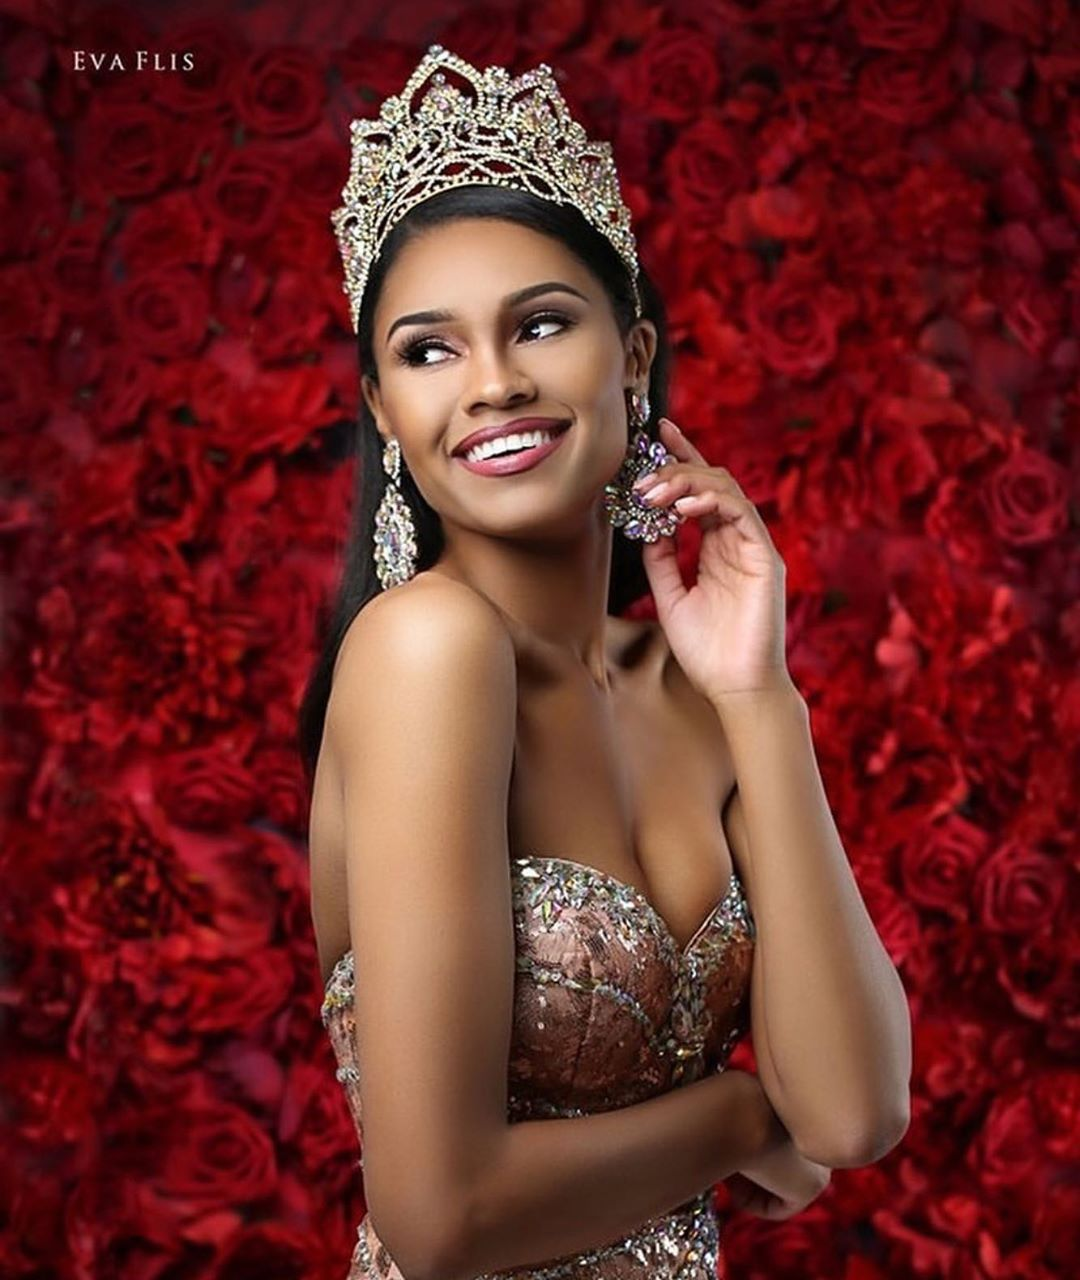 emanii davis, miss earth - air 2019. 69882510